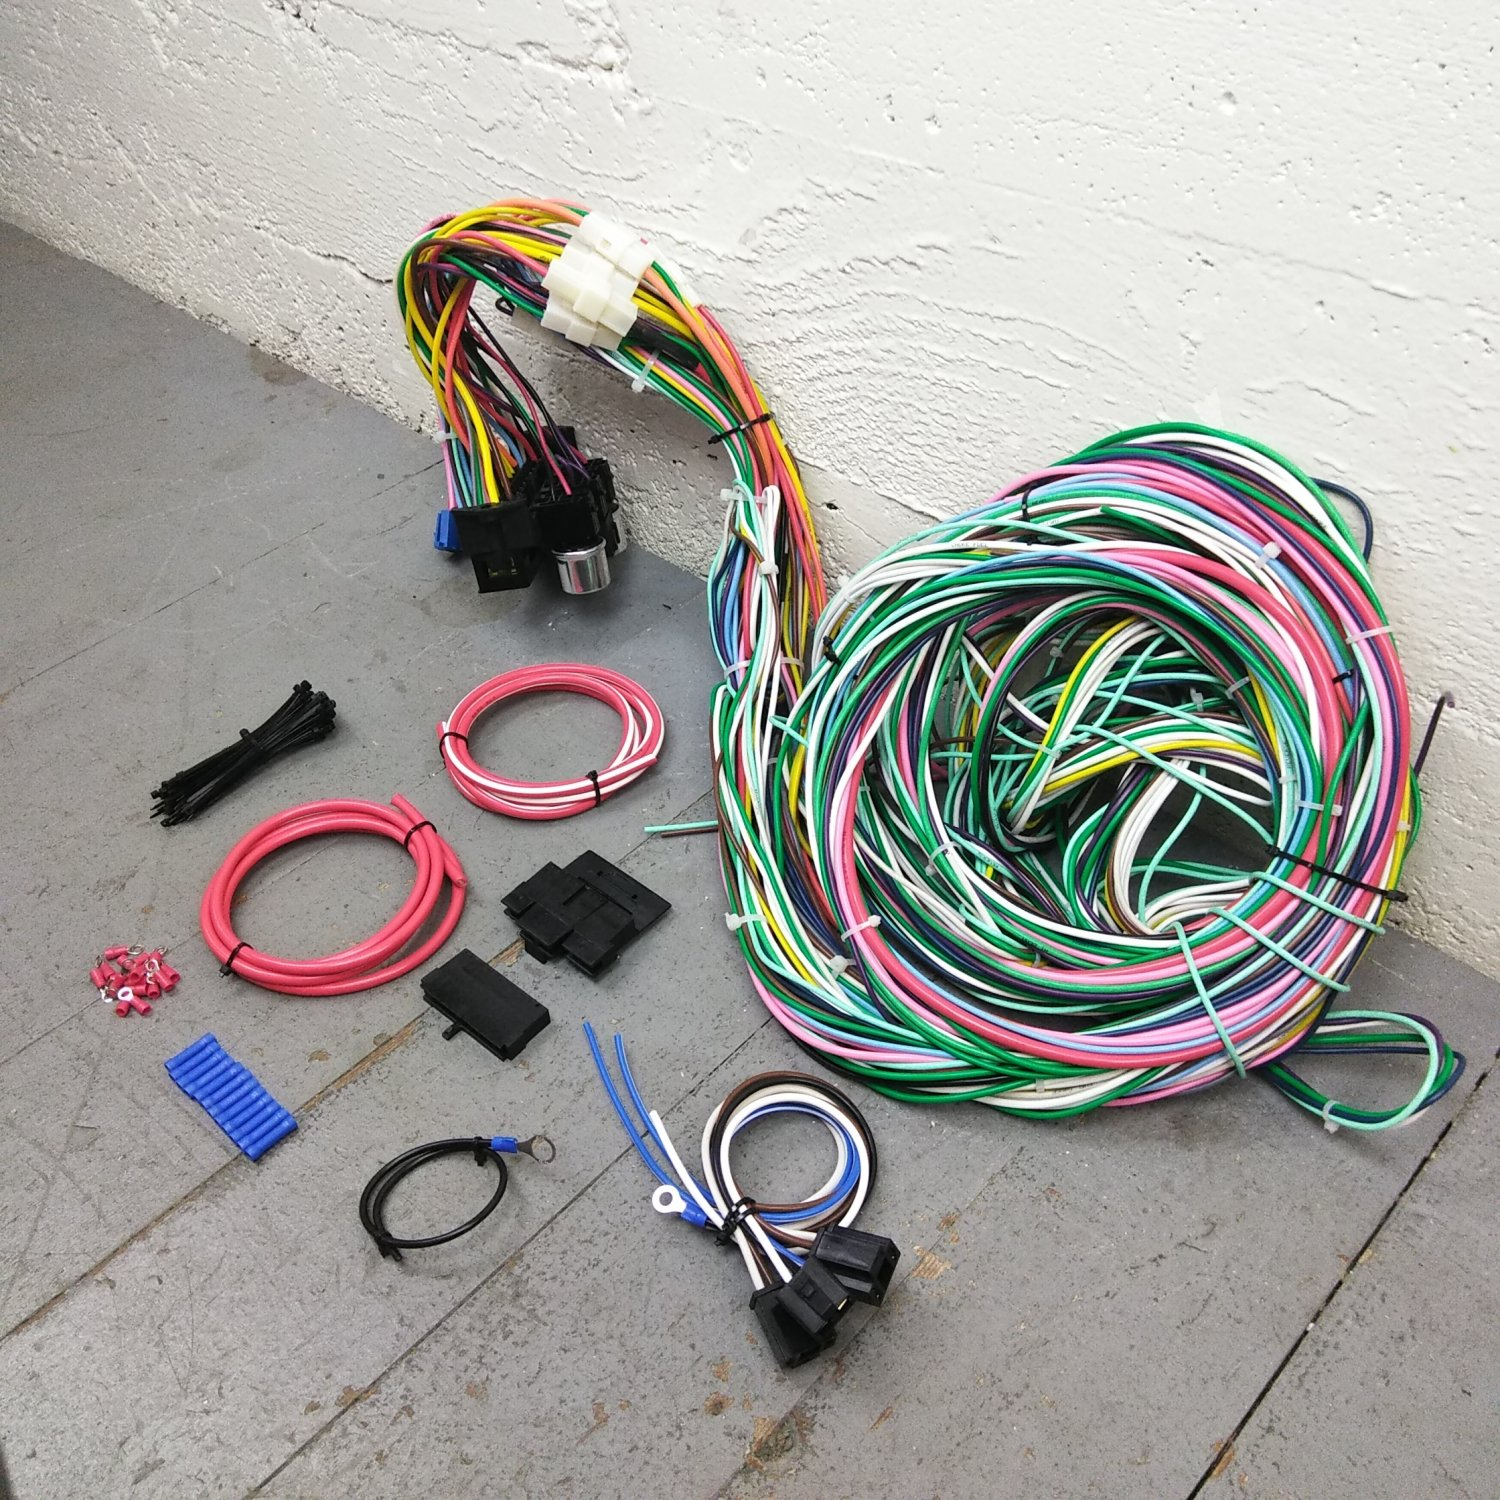 hight resolution of 1967 1968 camaro 68 1974 nova wire harness upgrade kit fits painless fuse